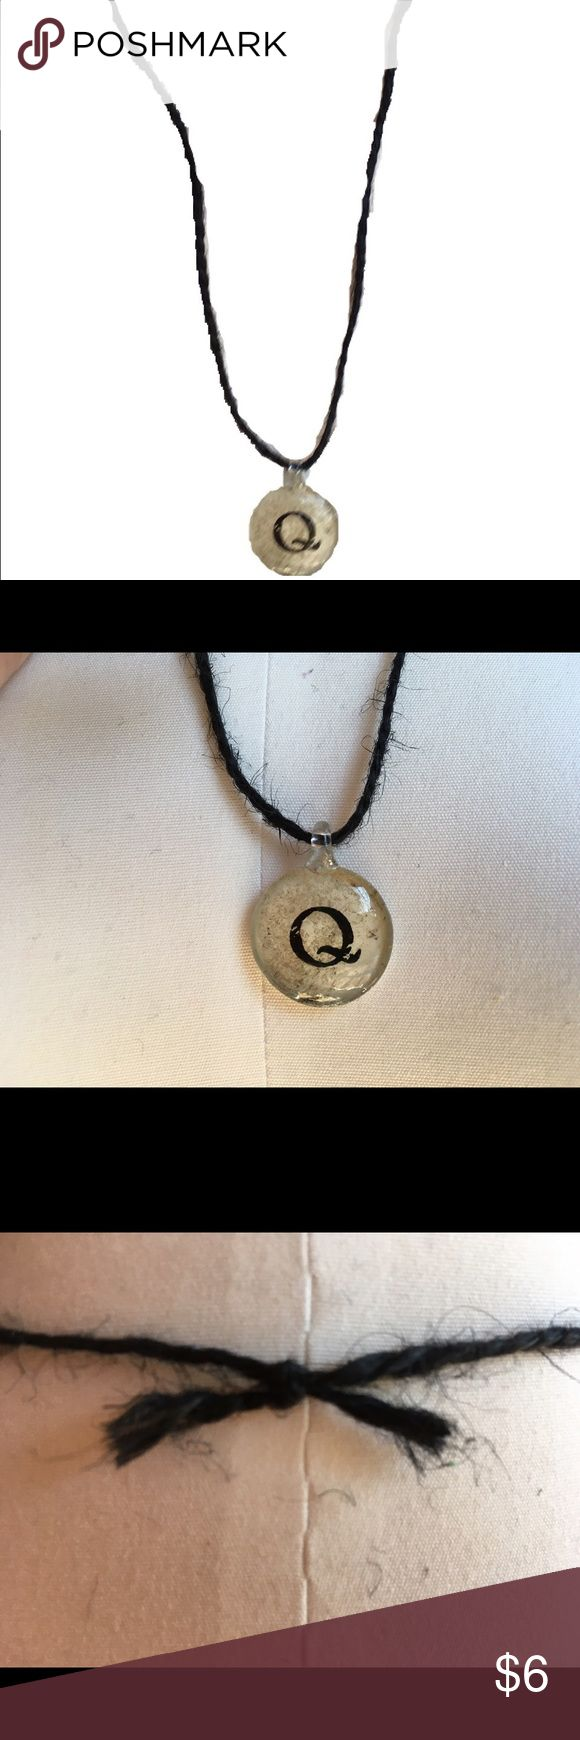 Handmade Black Twine Initial 'Q' Necklace Beautiful handmade black twine necklace featuring a silver-coated beige pendant with the initial 'Q' in the center. Approx. 13.5 inches, including pendant. Only one available. Handmade Jewelry Necklaces